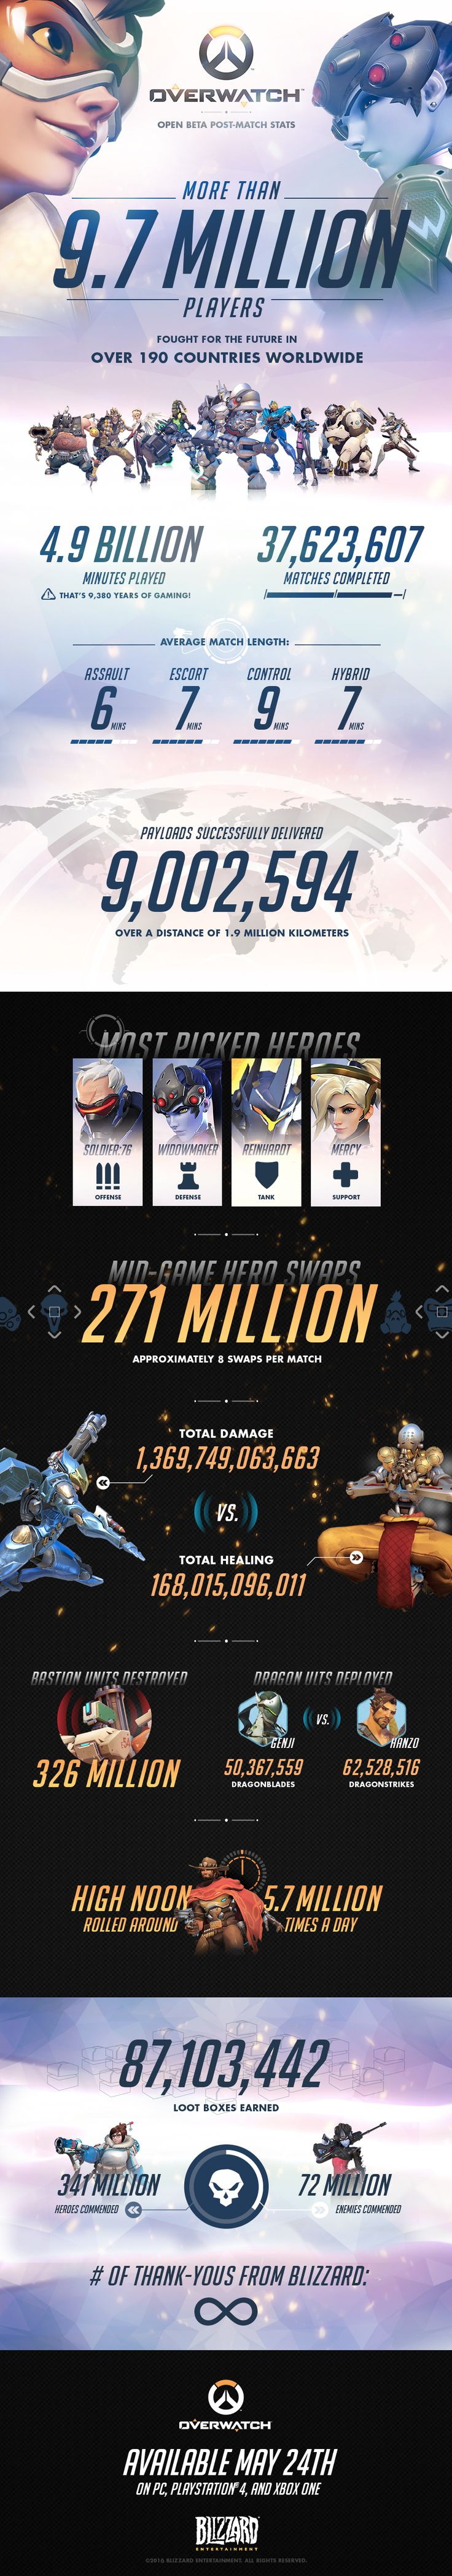 Overwatch Open Beta Infographic - News - Overwatch